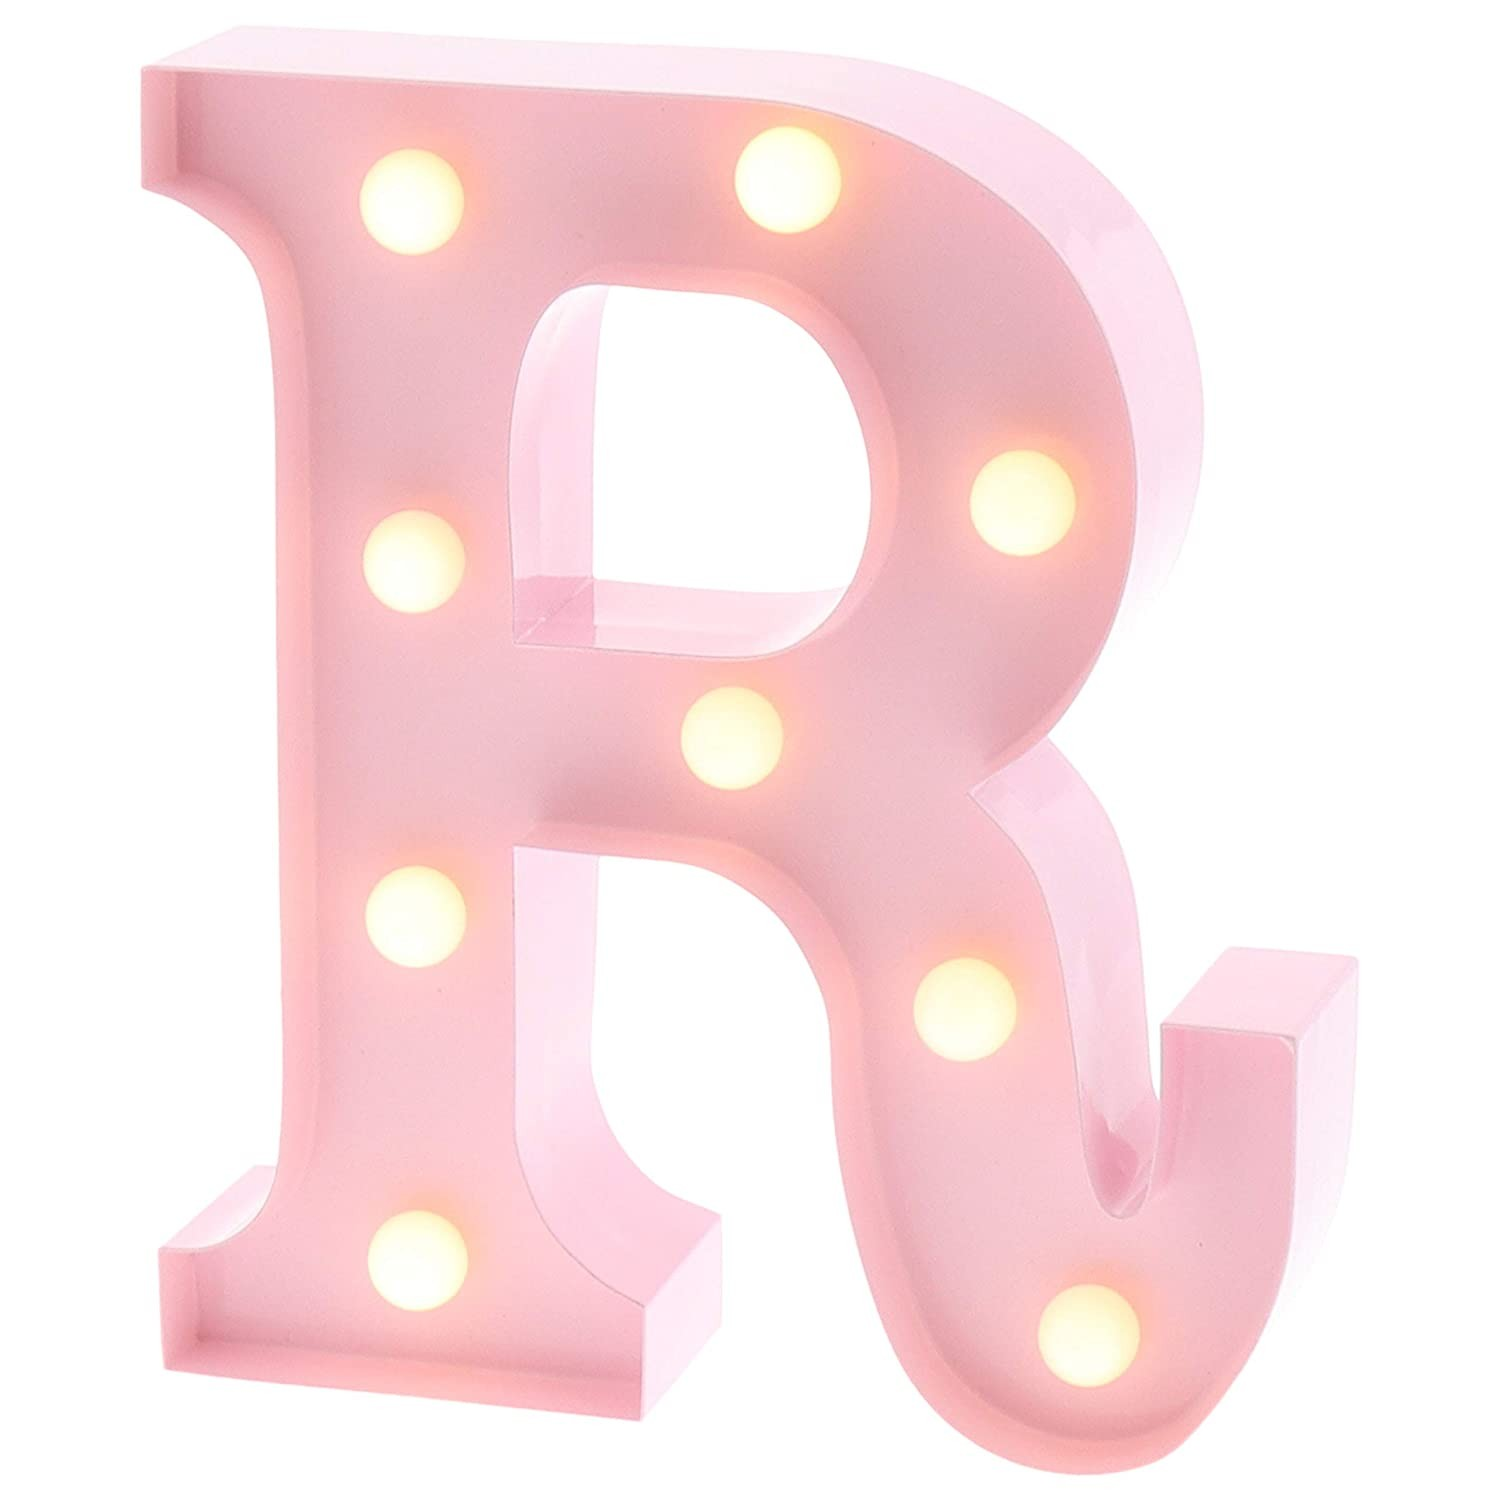 "Marquee Letters that are Lite with Timers Barnyard Designs Metal Marquee Letter R Light Up Wall Initial Nursery Letter Home and event Decoration 9"" Baby Pink Of Marquee Letters that are Lite with Timers"